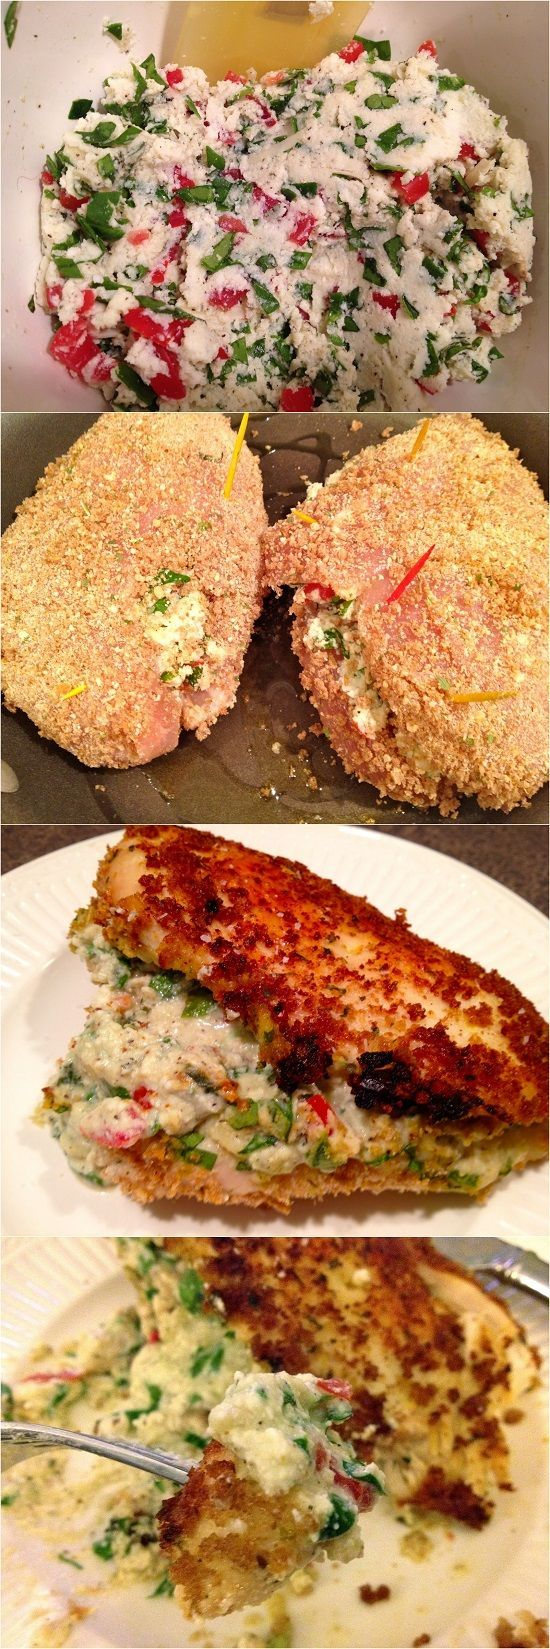 ... Crusted Chicken Stuffed with Ricotta, Spinach, Tomatoes, and Basil